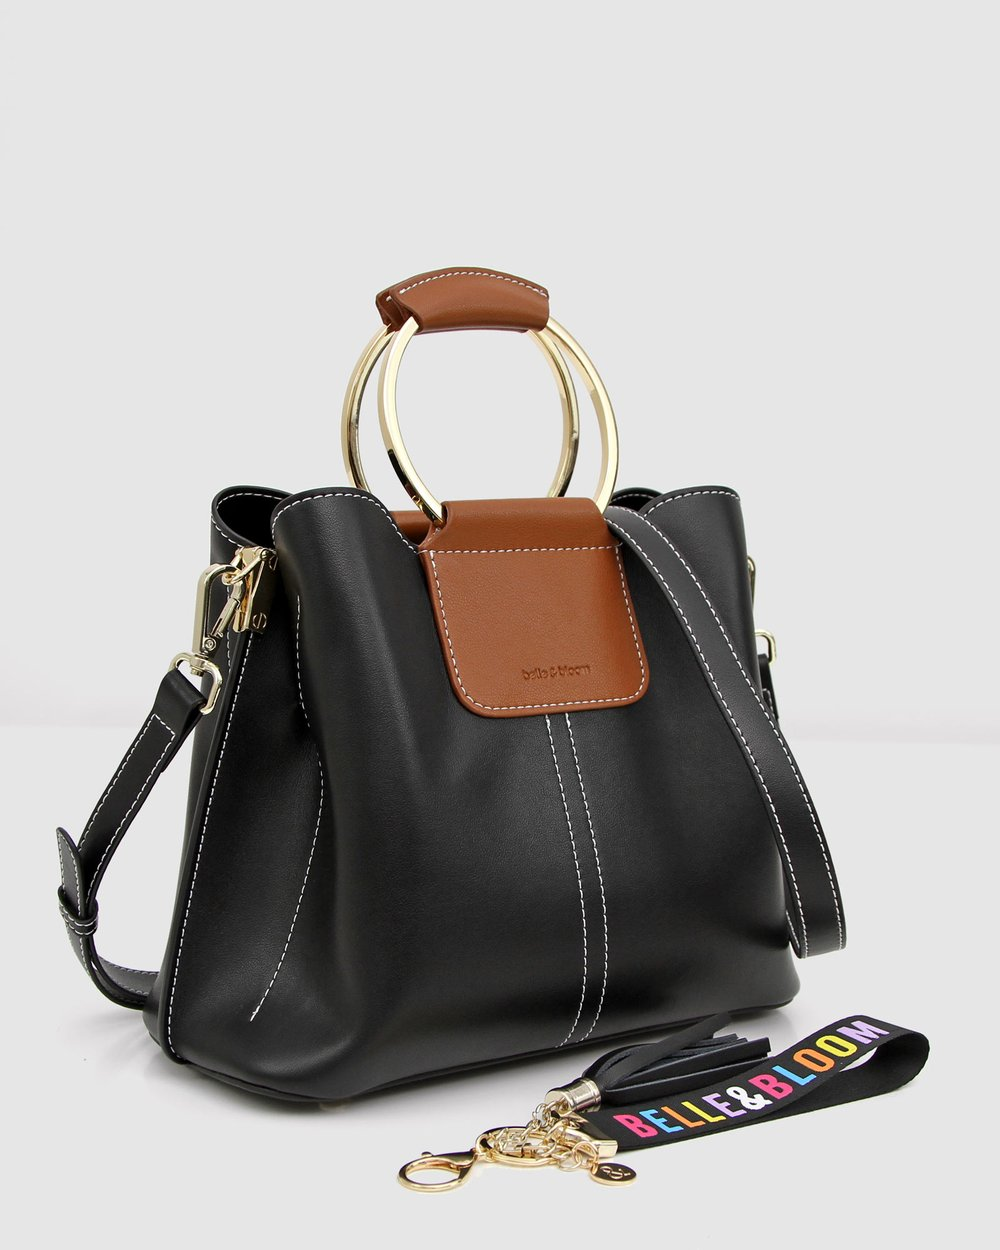 5881957ba Twilight Leather Cross-Body Bag by Belle & Bloom Online | THE ICONIC |  Australia